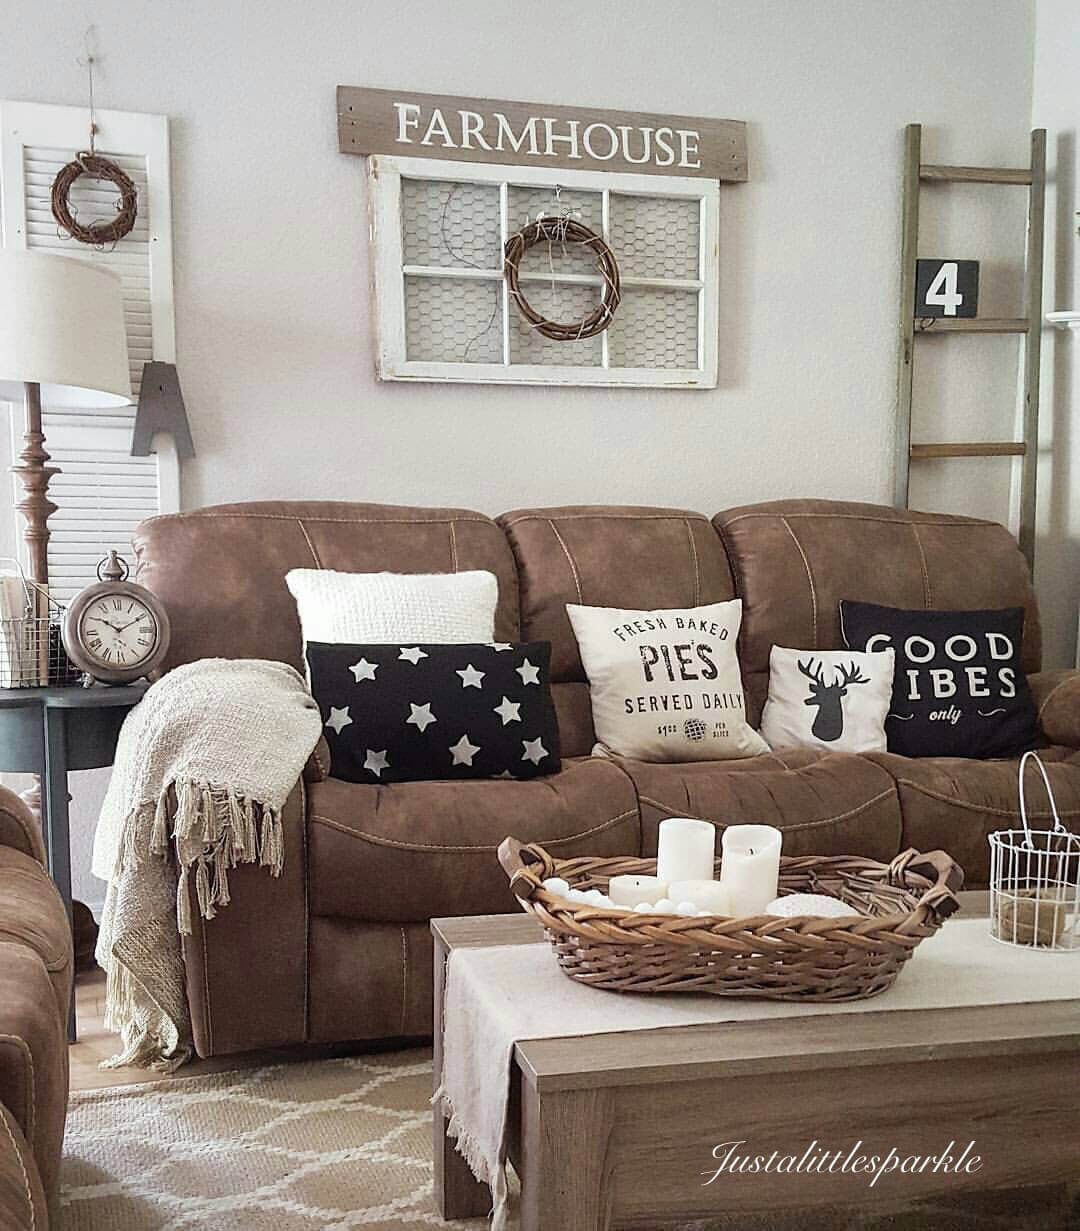 microfiber couch farmhouse living room decor ideas | future home